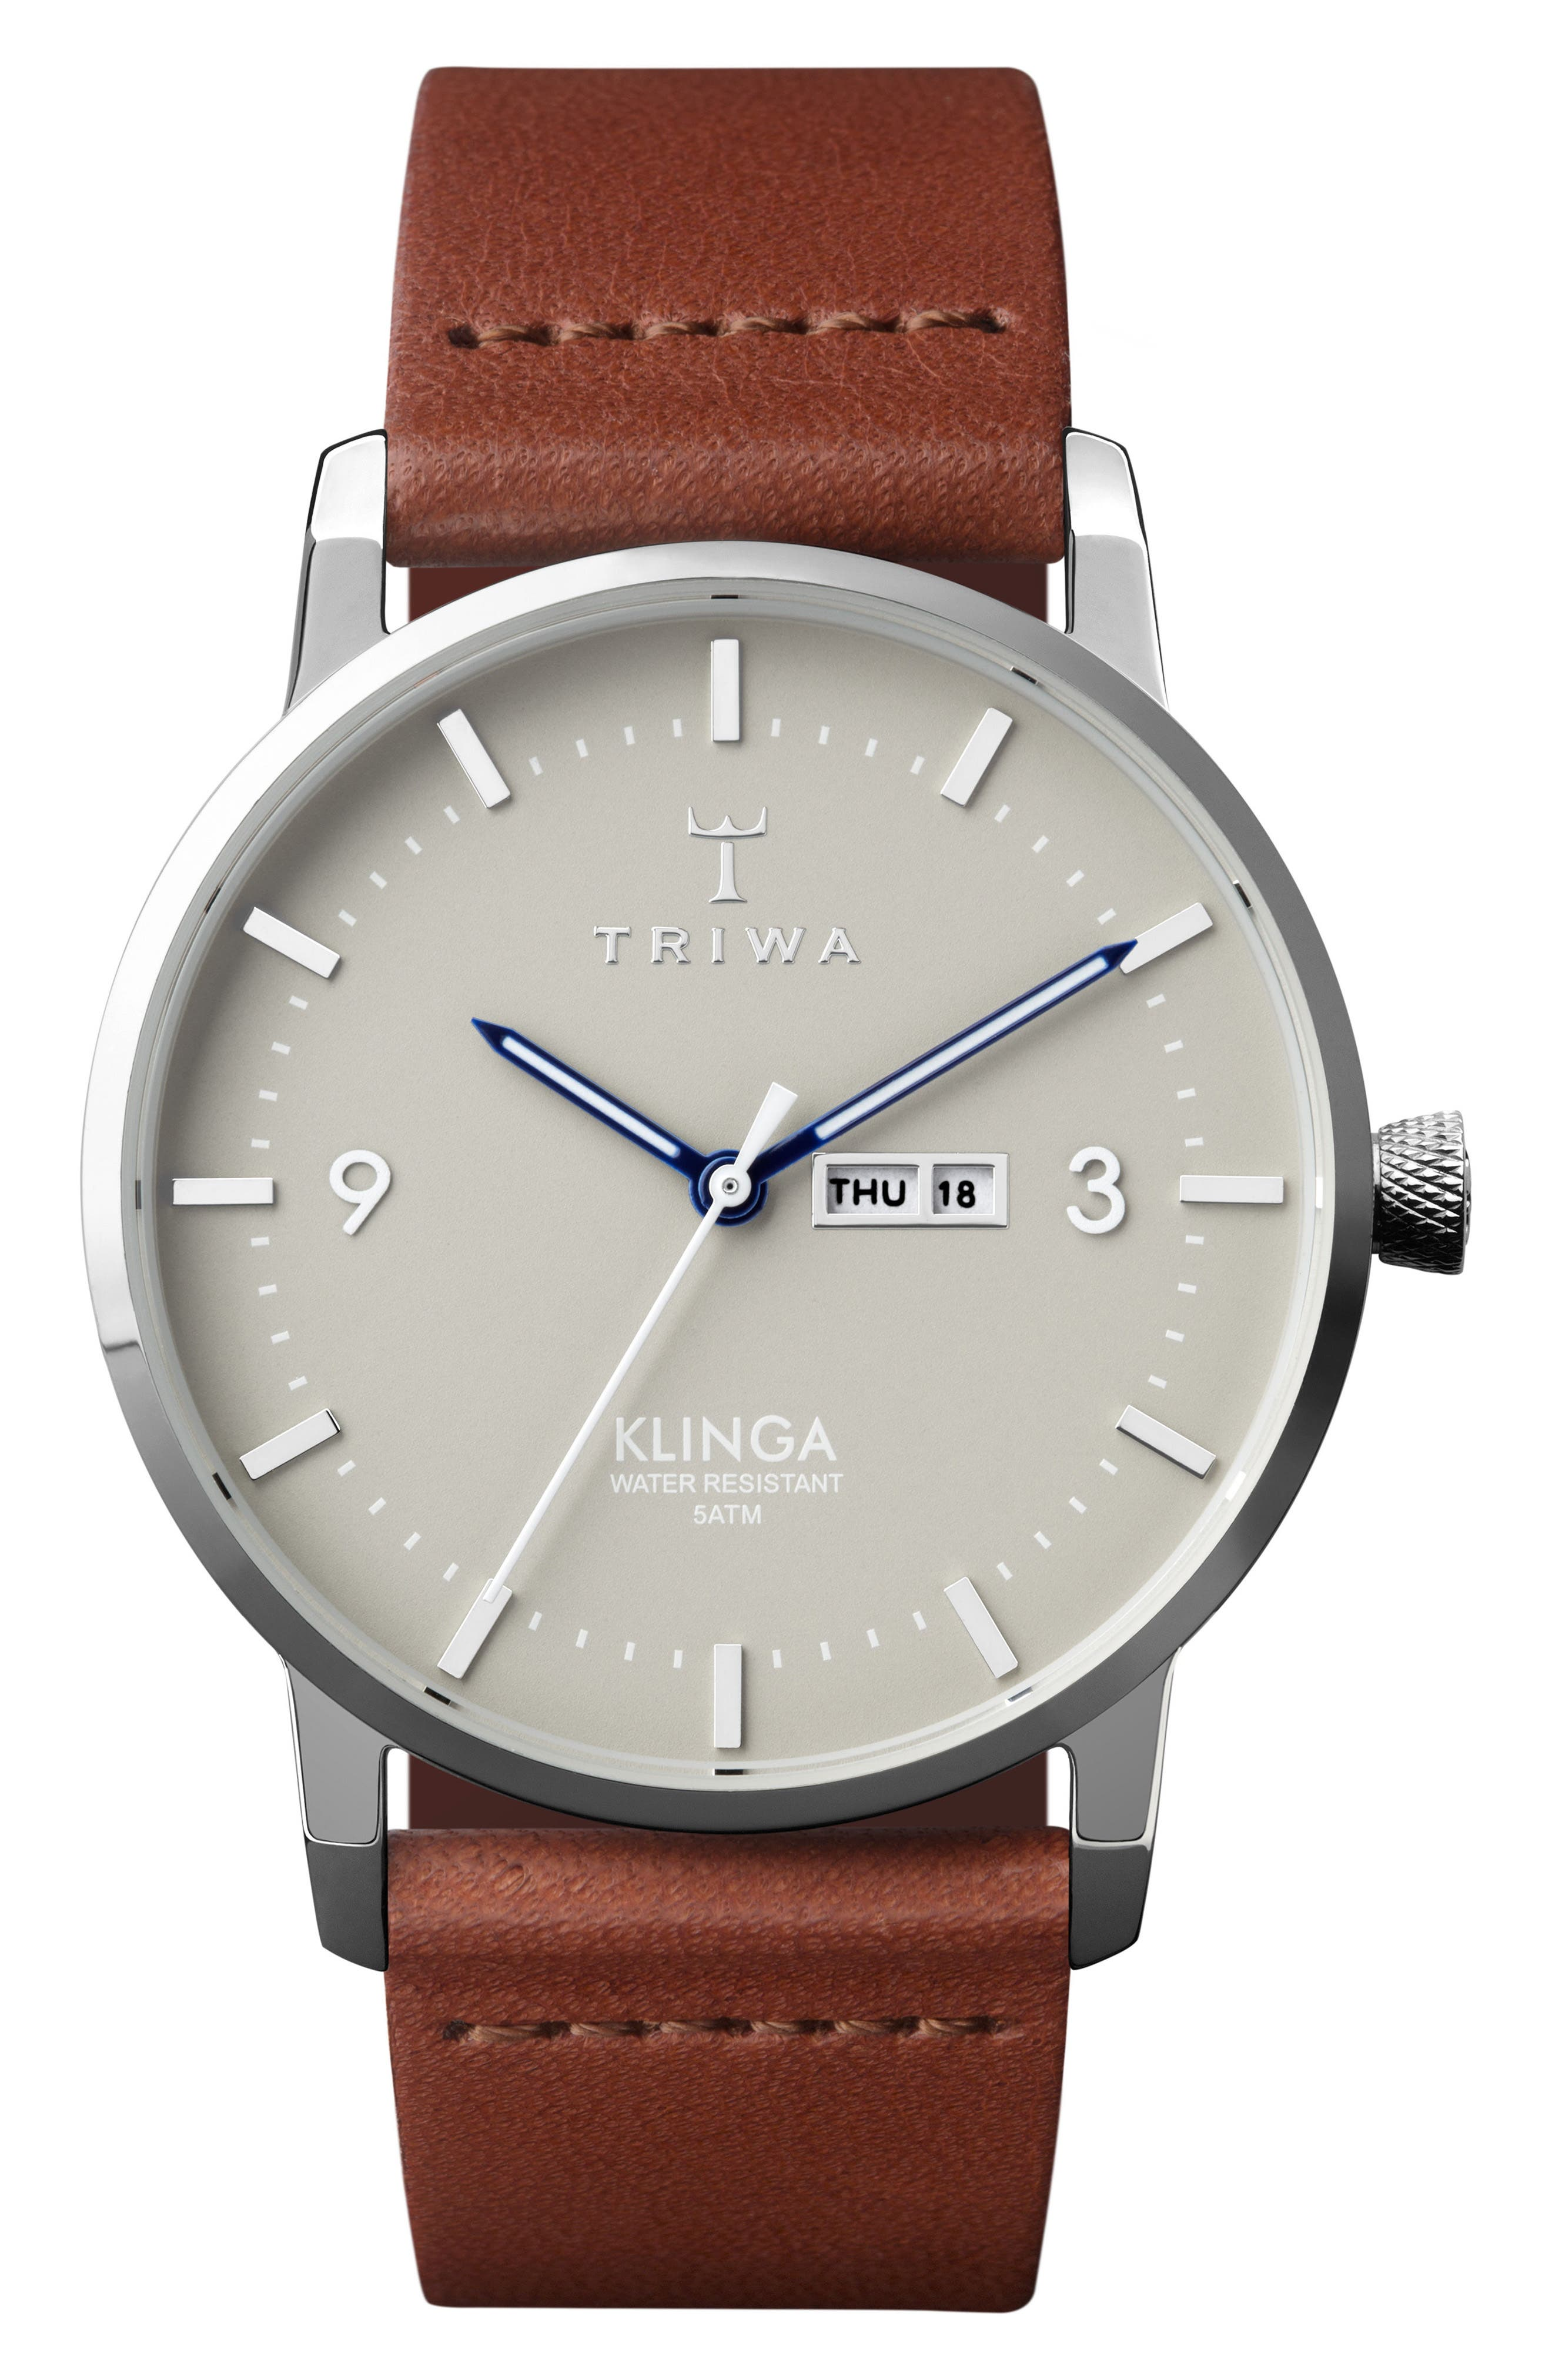 Main Image - TRIWA Klinga Leather Strap Watch, 38mm